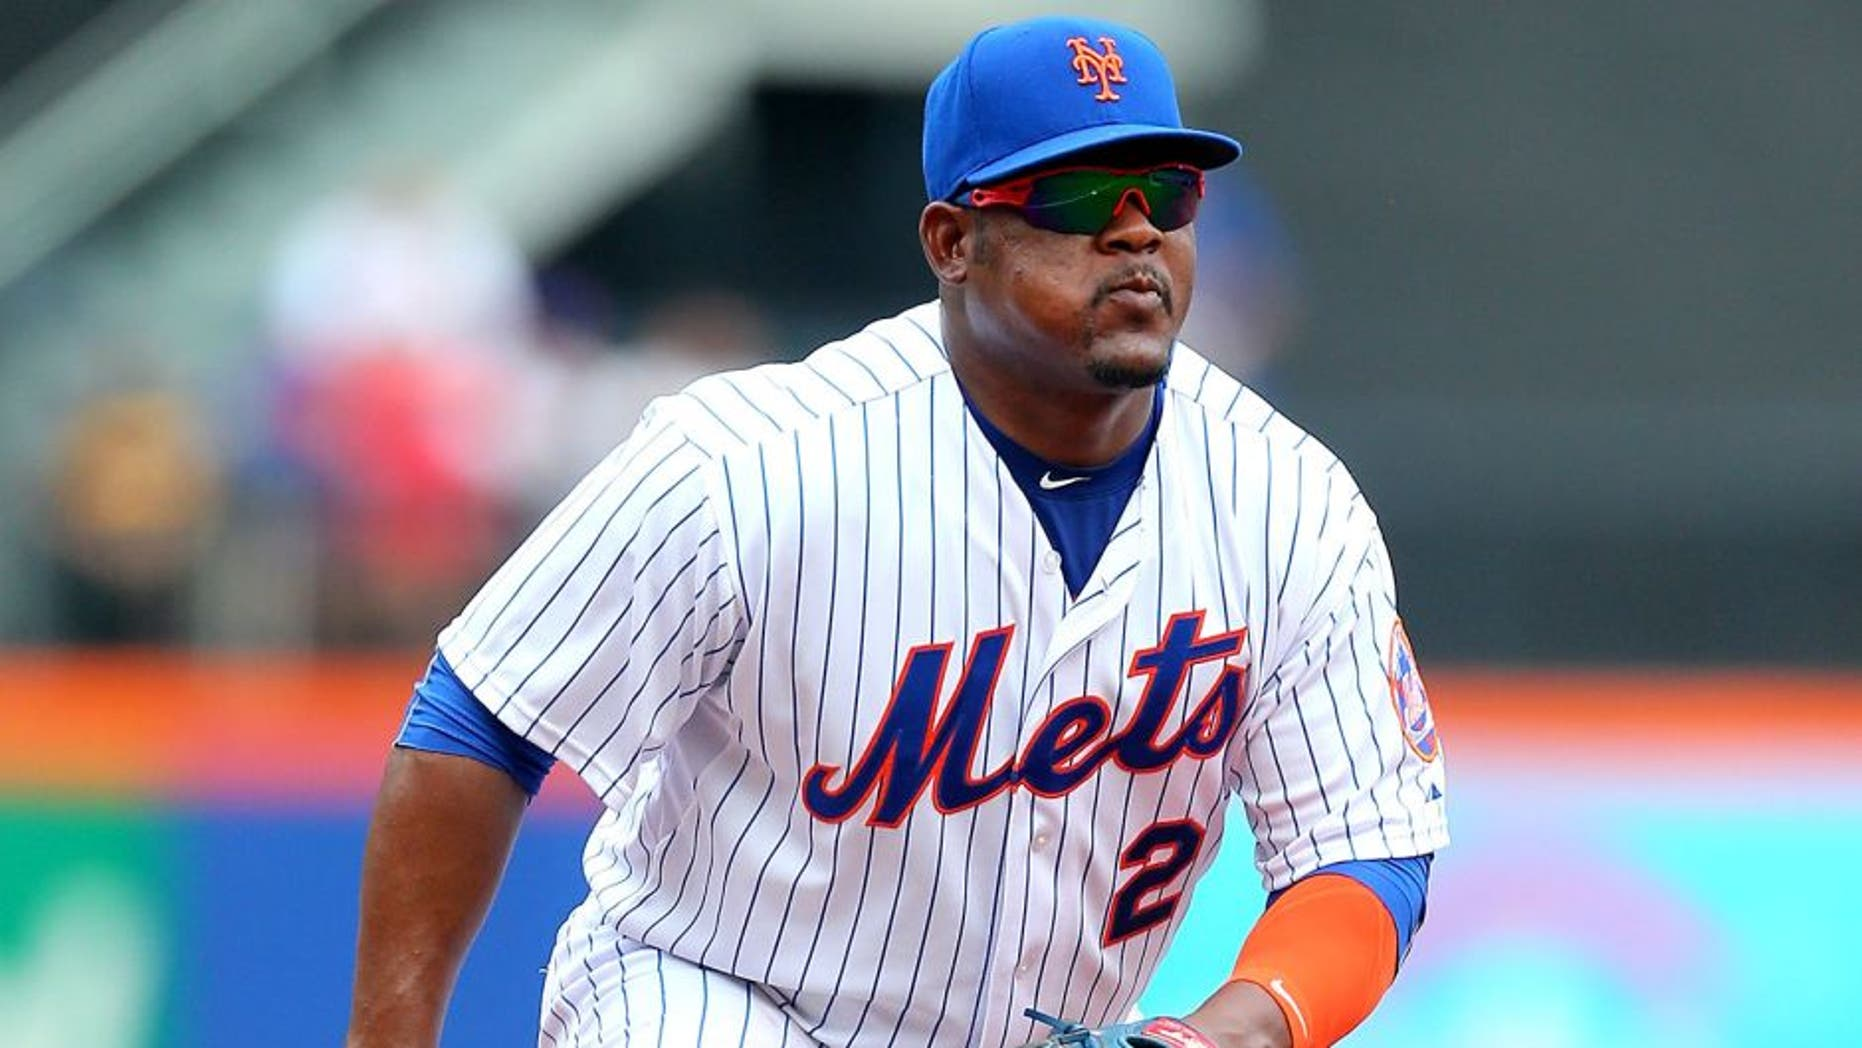 NEW YORK, NY - JULY 30: Juan Uribe #2 of the New York Mets in action against the San Diego Padres at Citi Field on July 30, 2015 in Flushing neighborhood of the Queens borough of New York City. Padres defeated the Mets 8-7. (Photo by Mike Stobe/Getty Images)